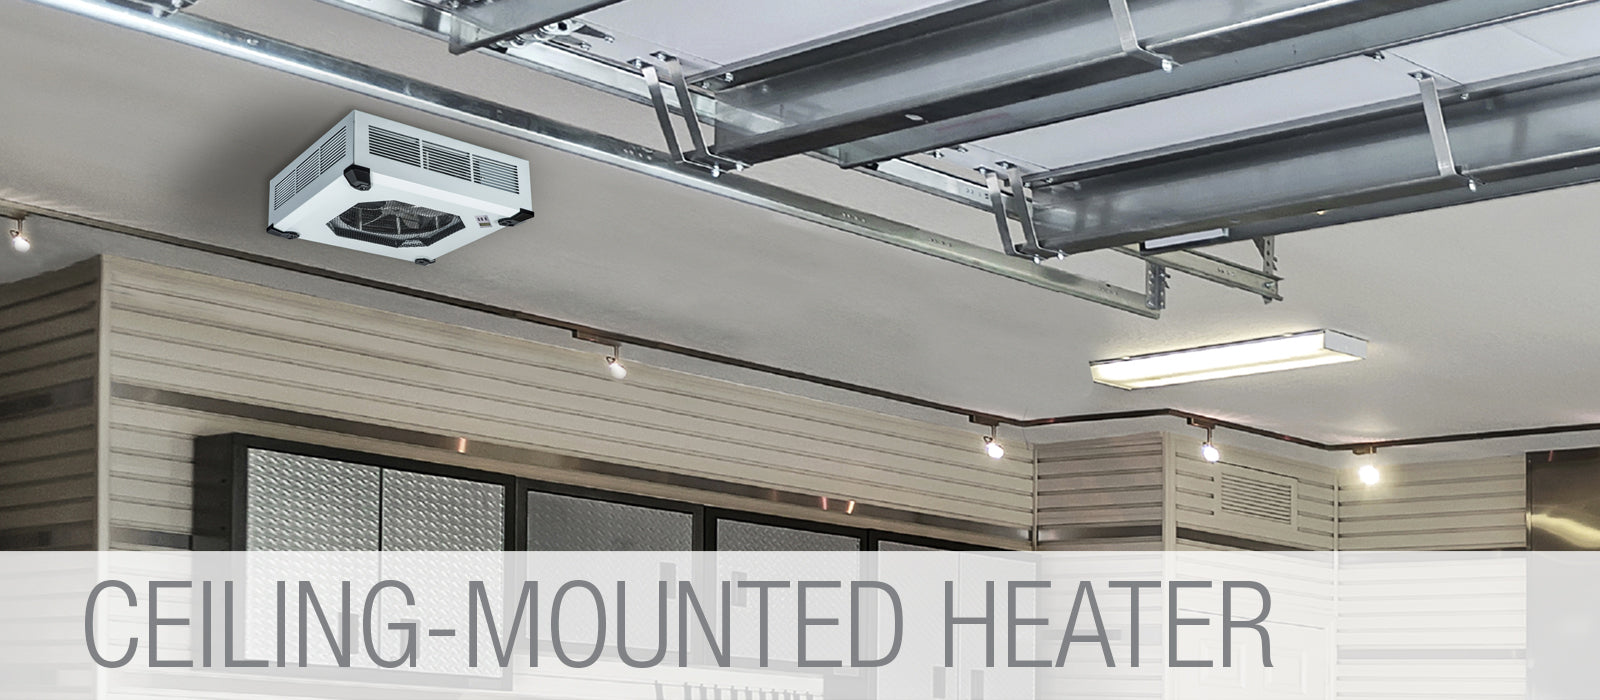 Ceiling-Mounted (Home Heat)